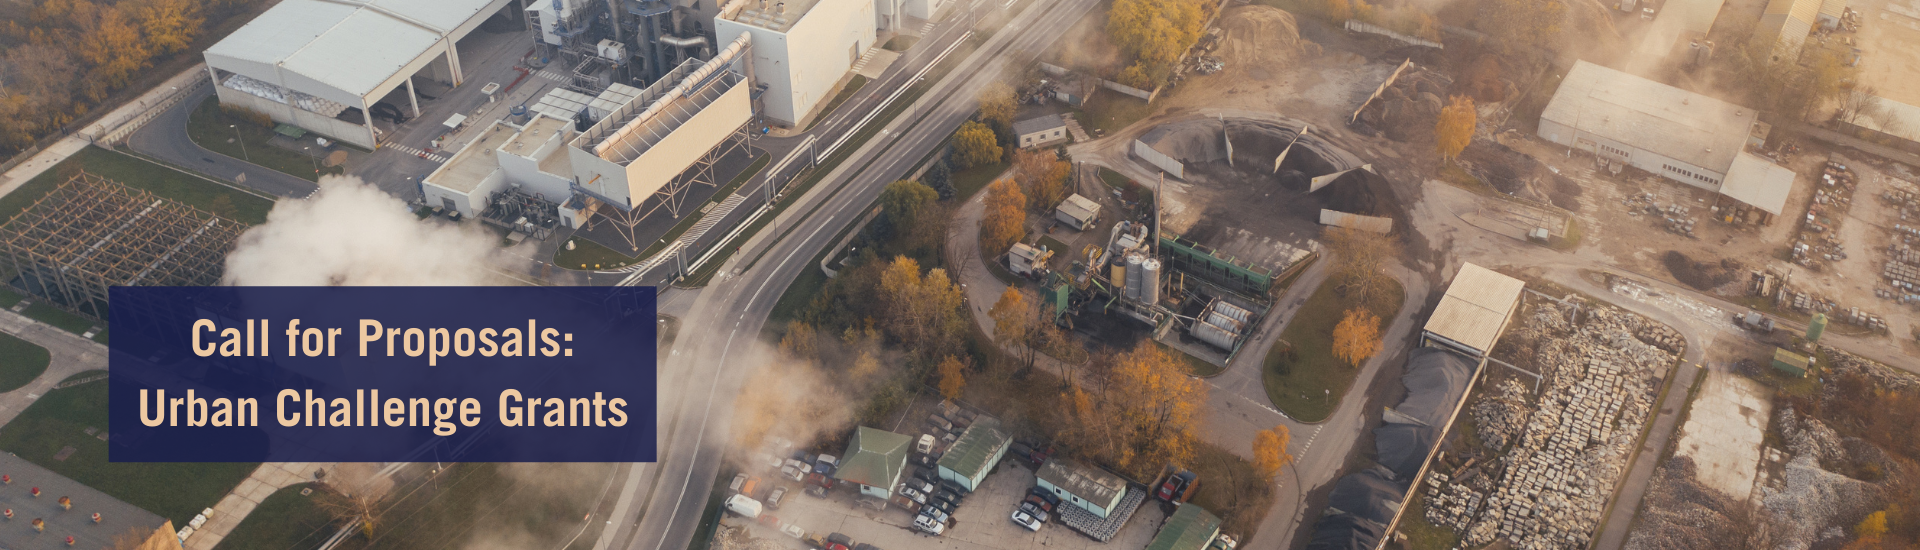 Image of an urban industrial area giving out smoke